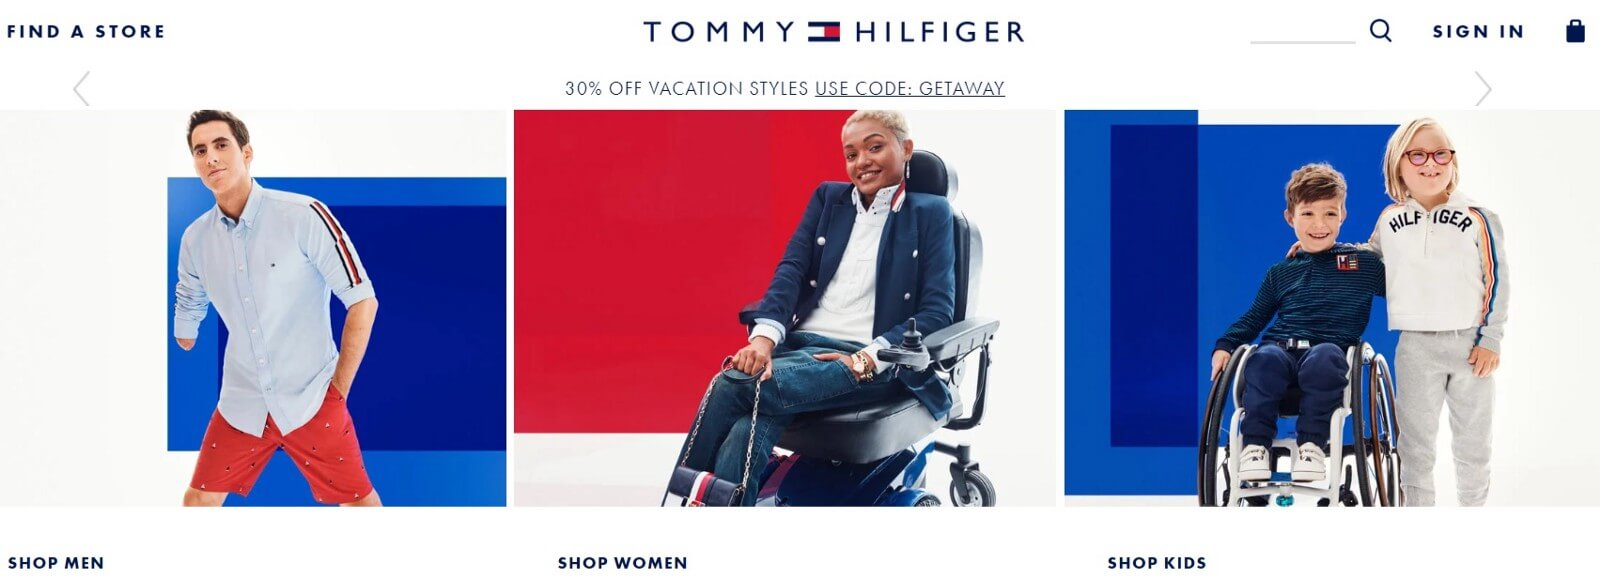 TommyHilfiger.com website screen shot showing adaptive clothing for people with disabilities. Young man with missing arm, African American woman in electric wheelchair, young boy in wheelchair with girl with Down's Syndrome standing next to him arm in arm. All wearing Tommy Adaptive clothing